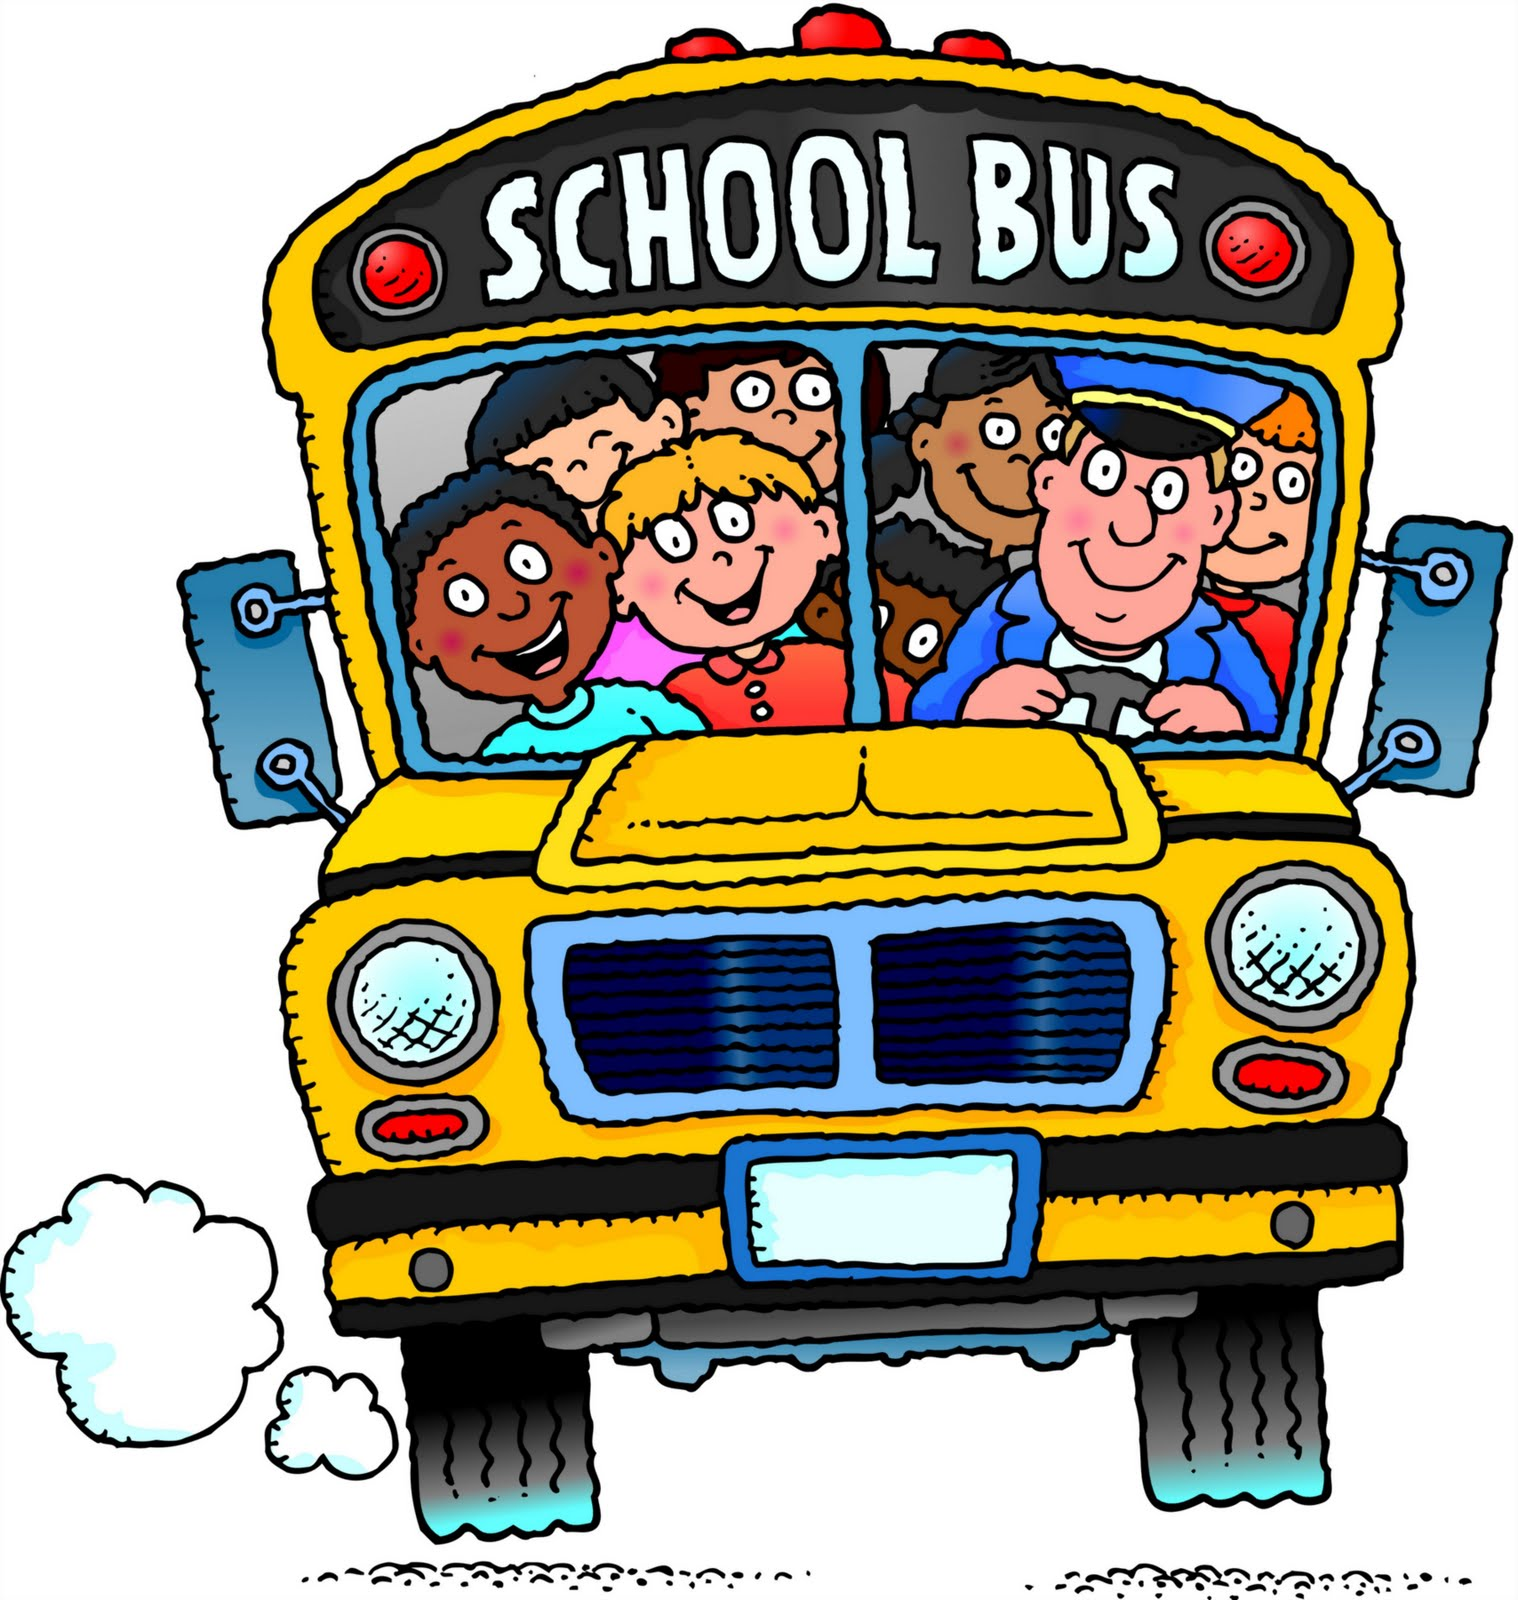 Cartoon School Bus Cartoon School Bus With Kids School Bus Cartoon